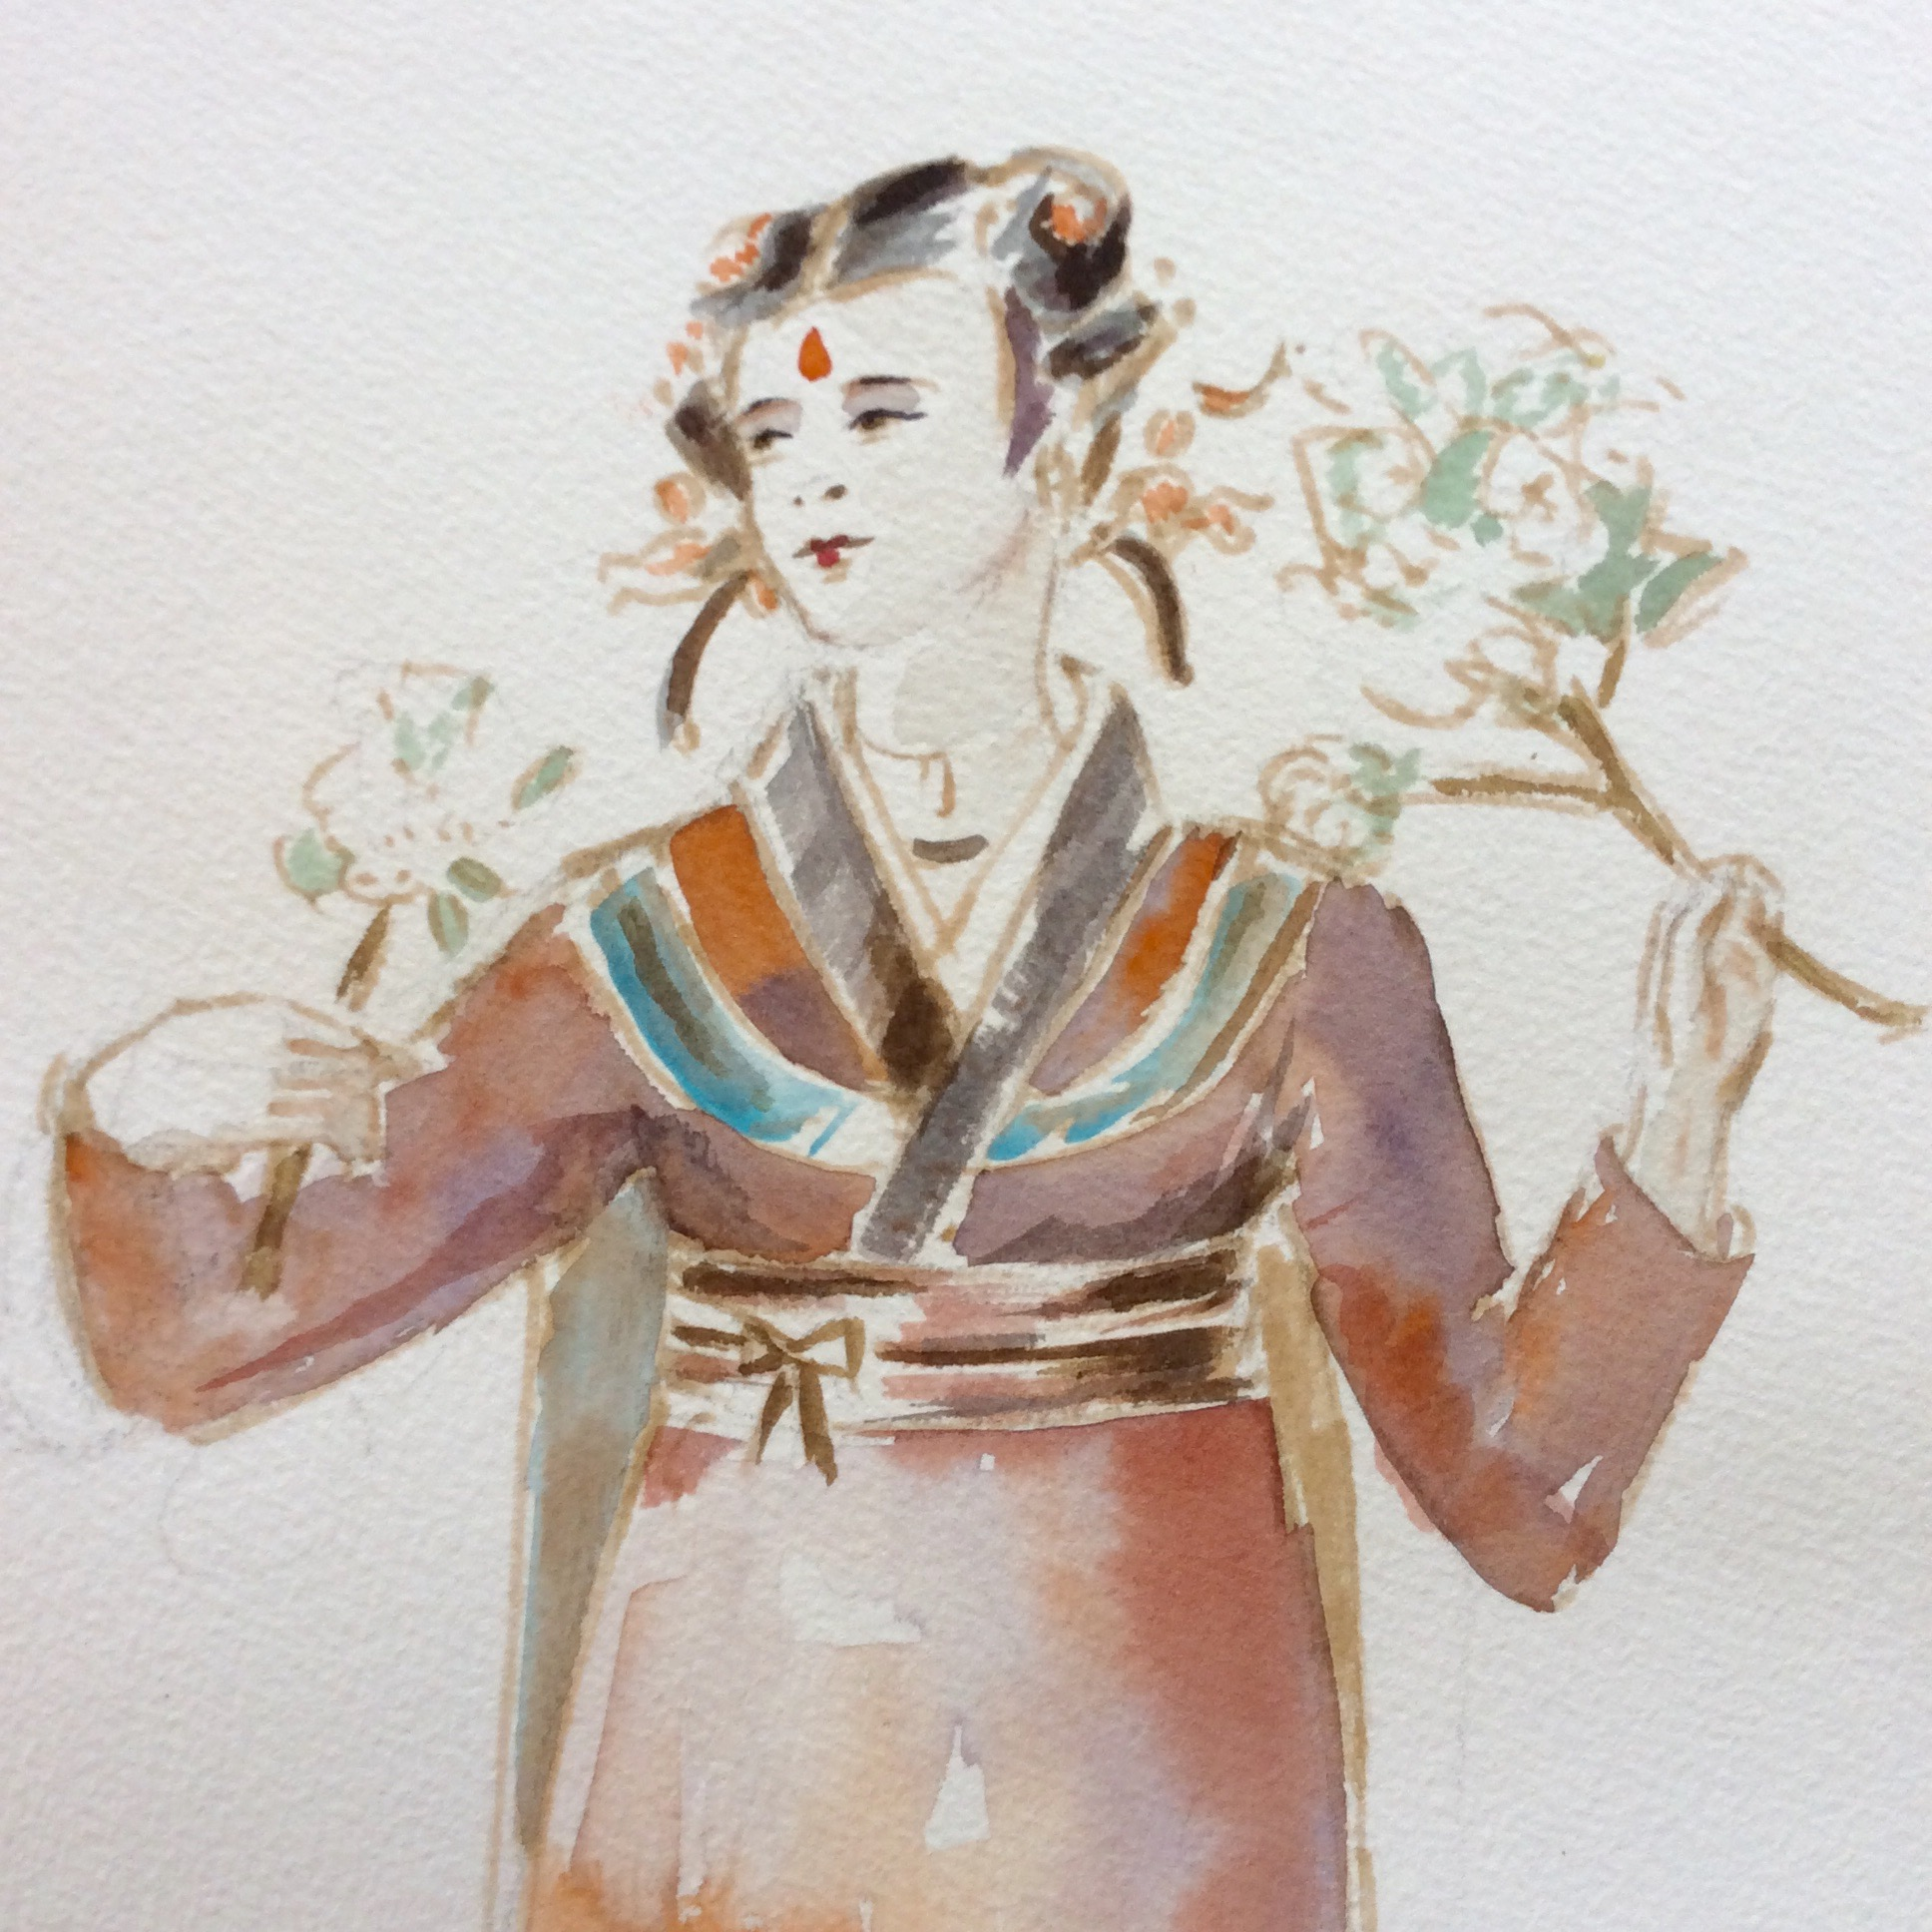 turandot - PUCCINImaquette of an handmaid (detail)watercolor2003